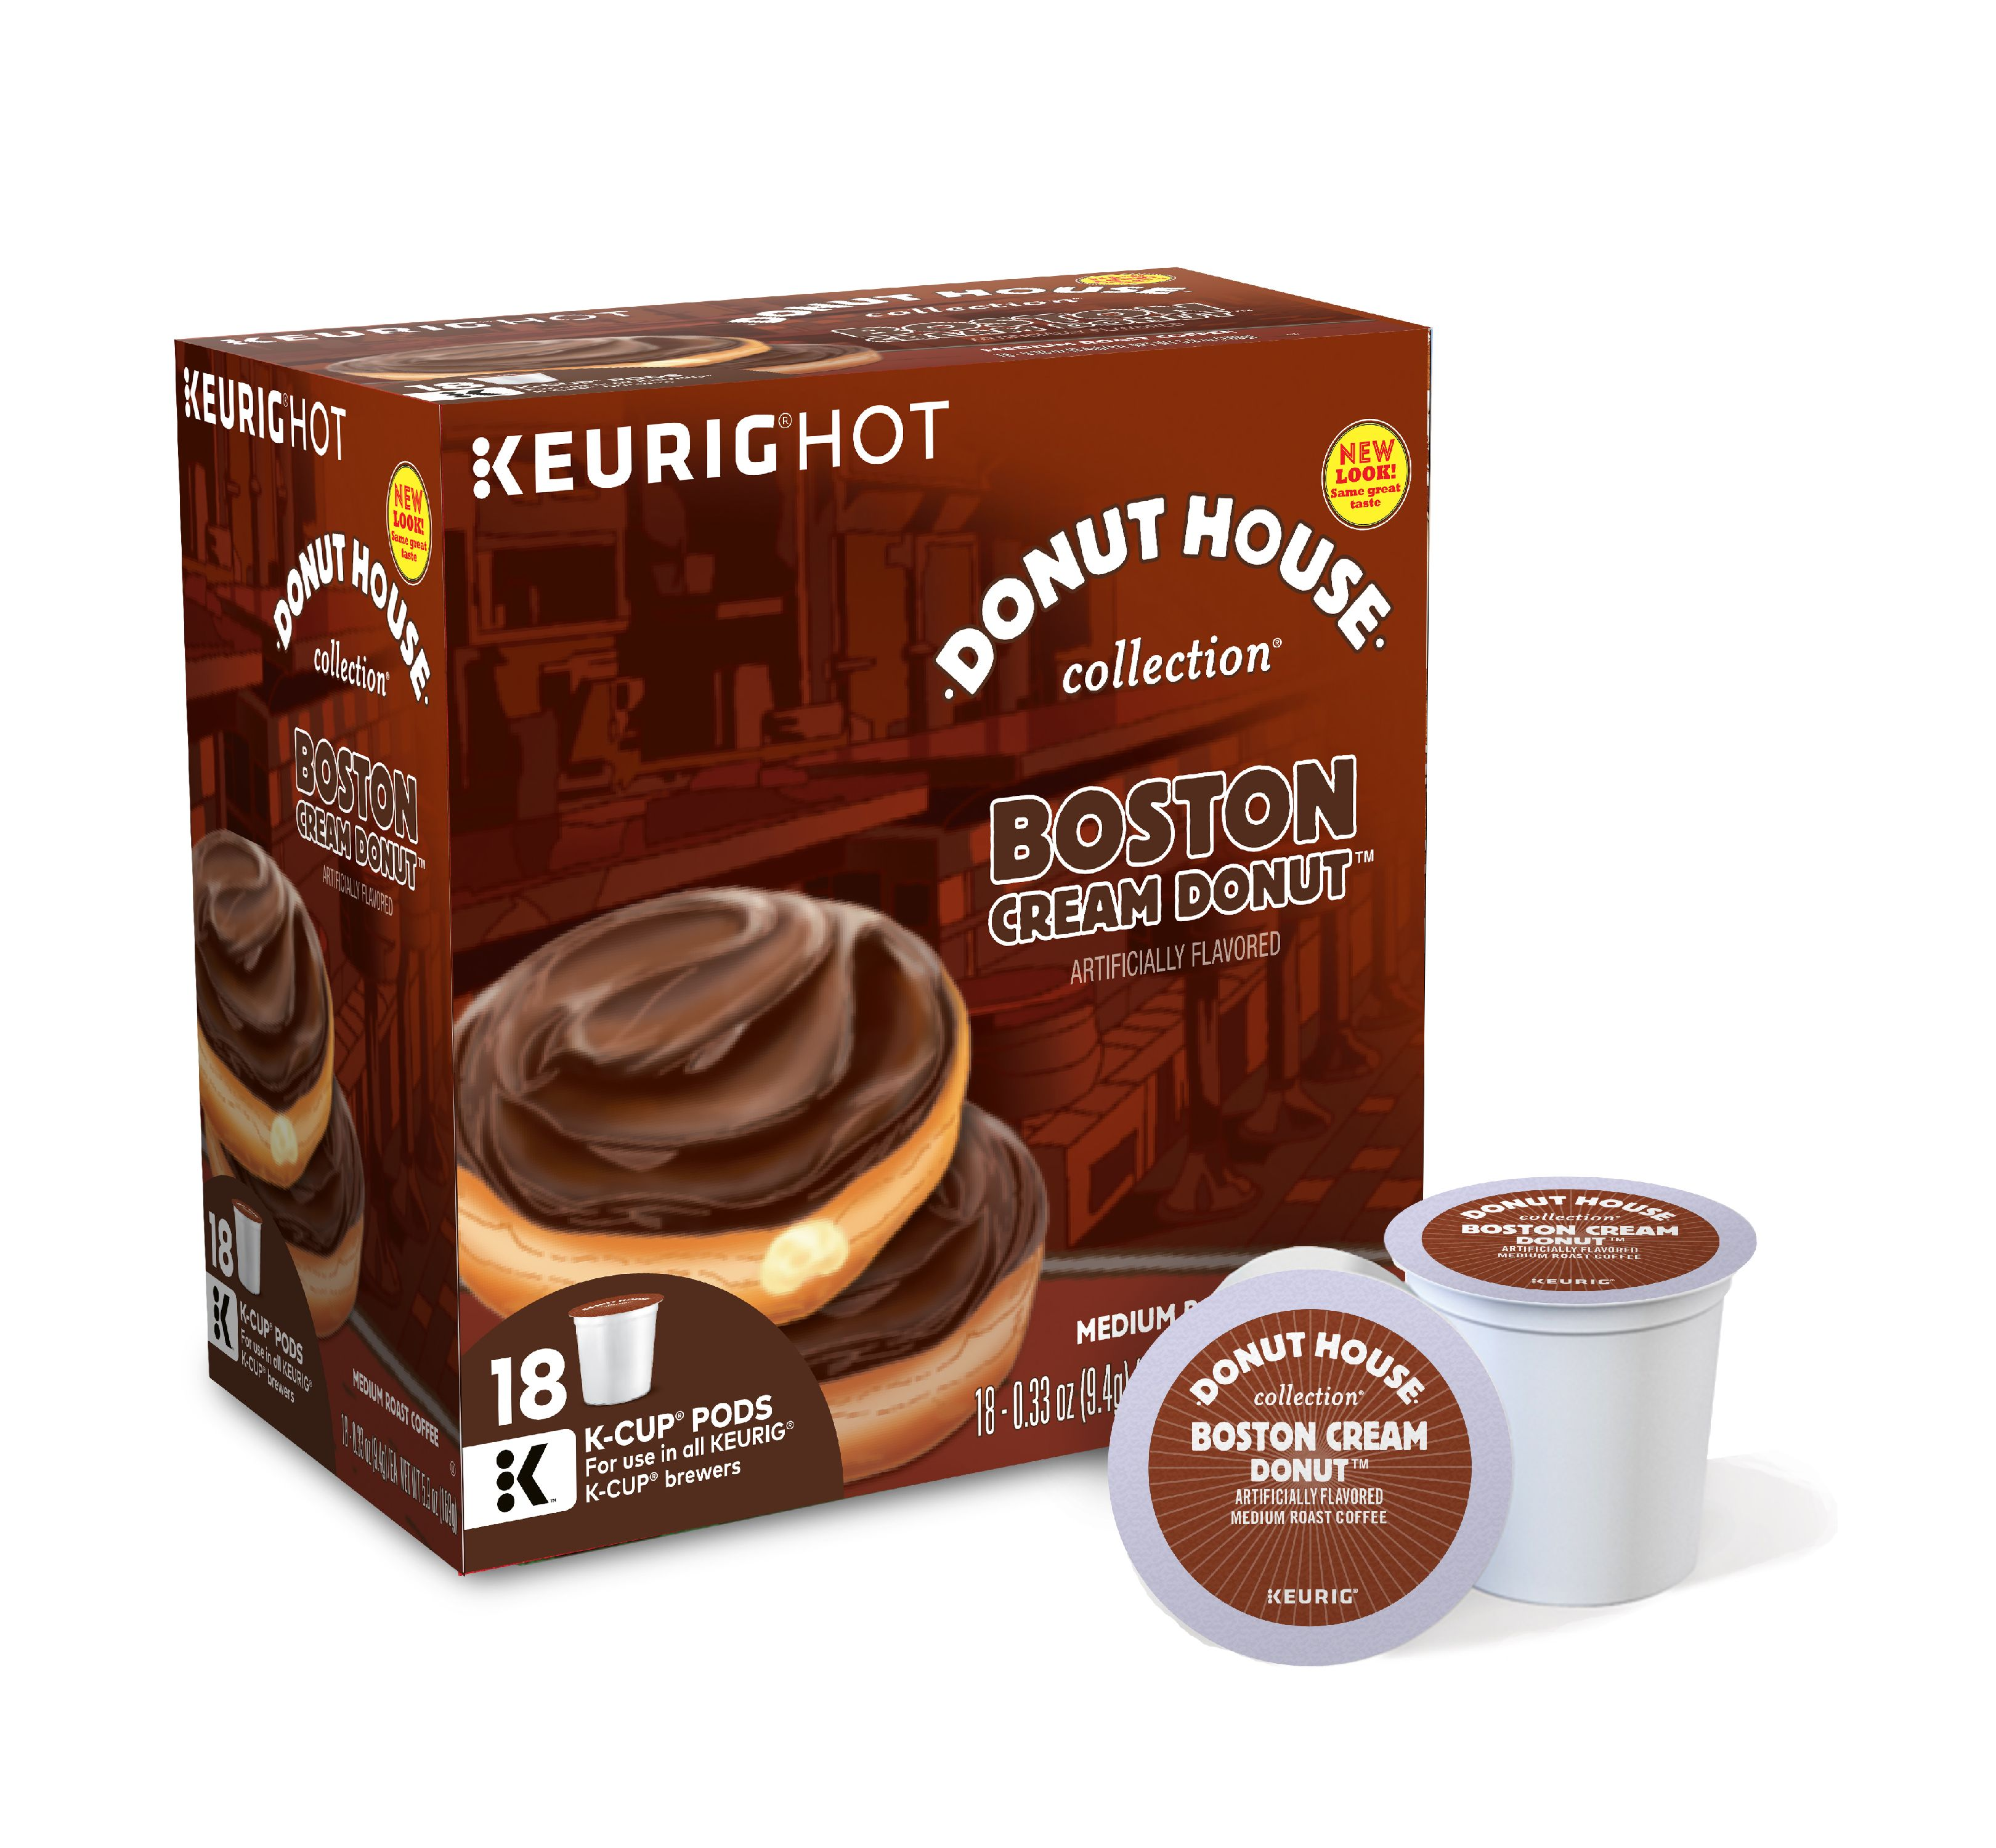 Donut House Collection Boston Cream Donut Keurig Single-Serve K-Cup Pods, Medium Roast, 18 Count